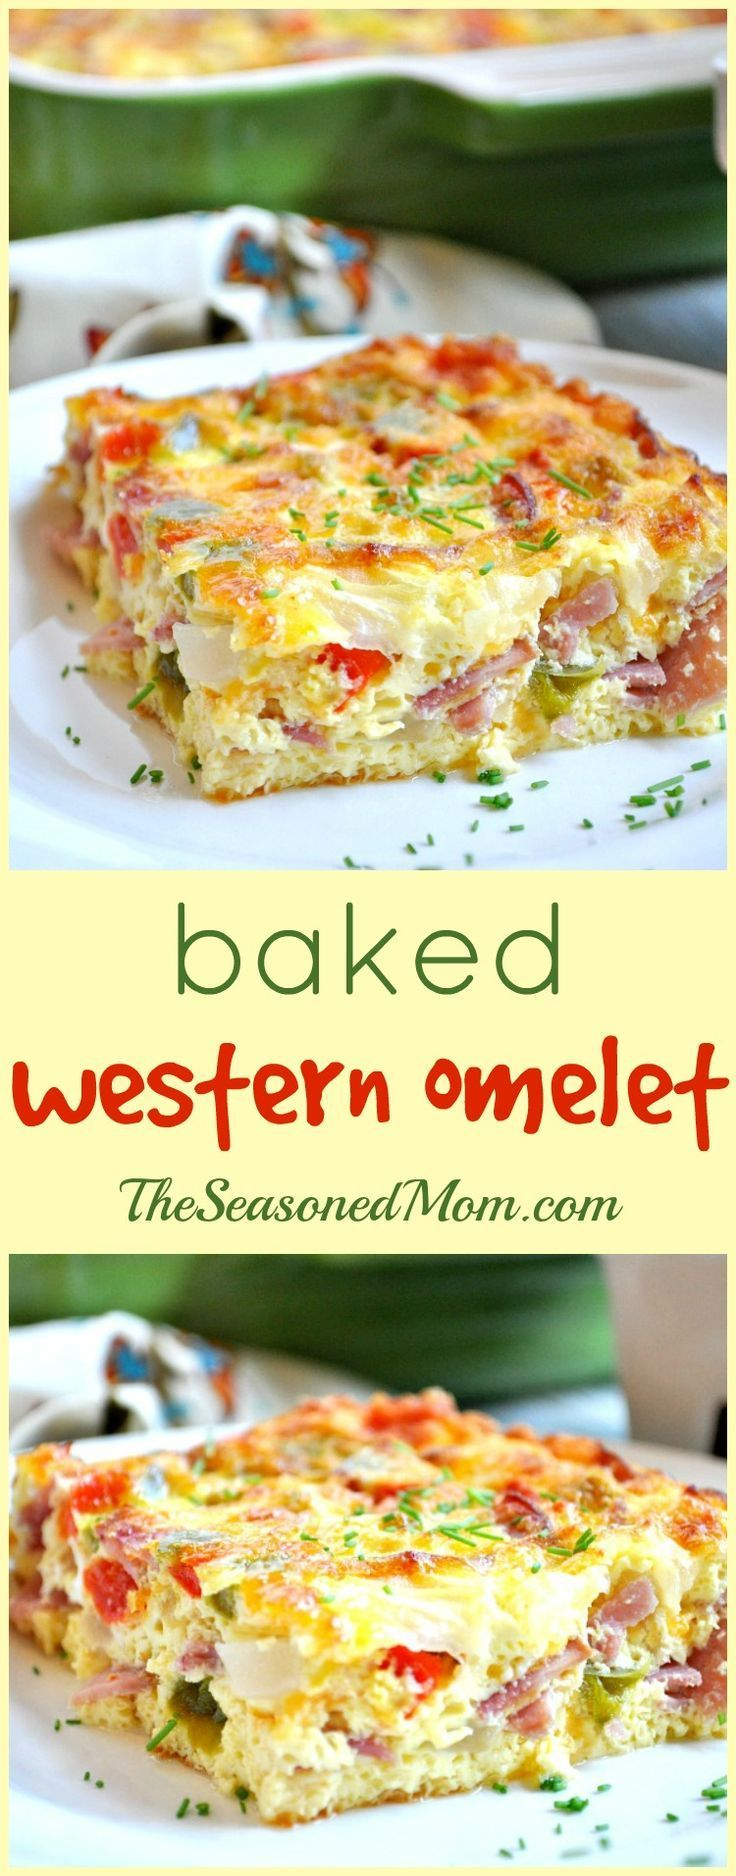 mens sneakers velcro closure Baked Western Omelet | Recipe | Westerns, Omelettes and Protein